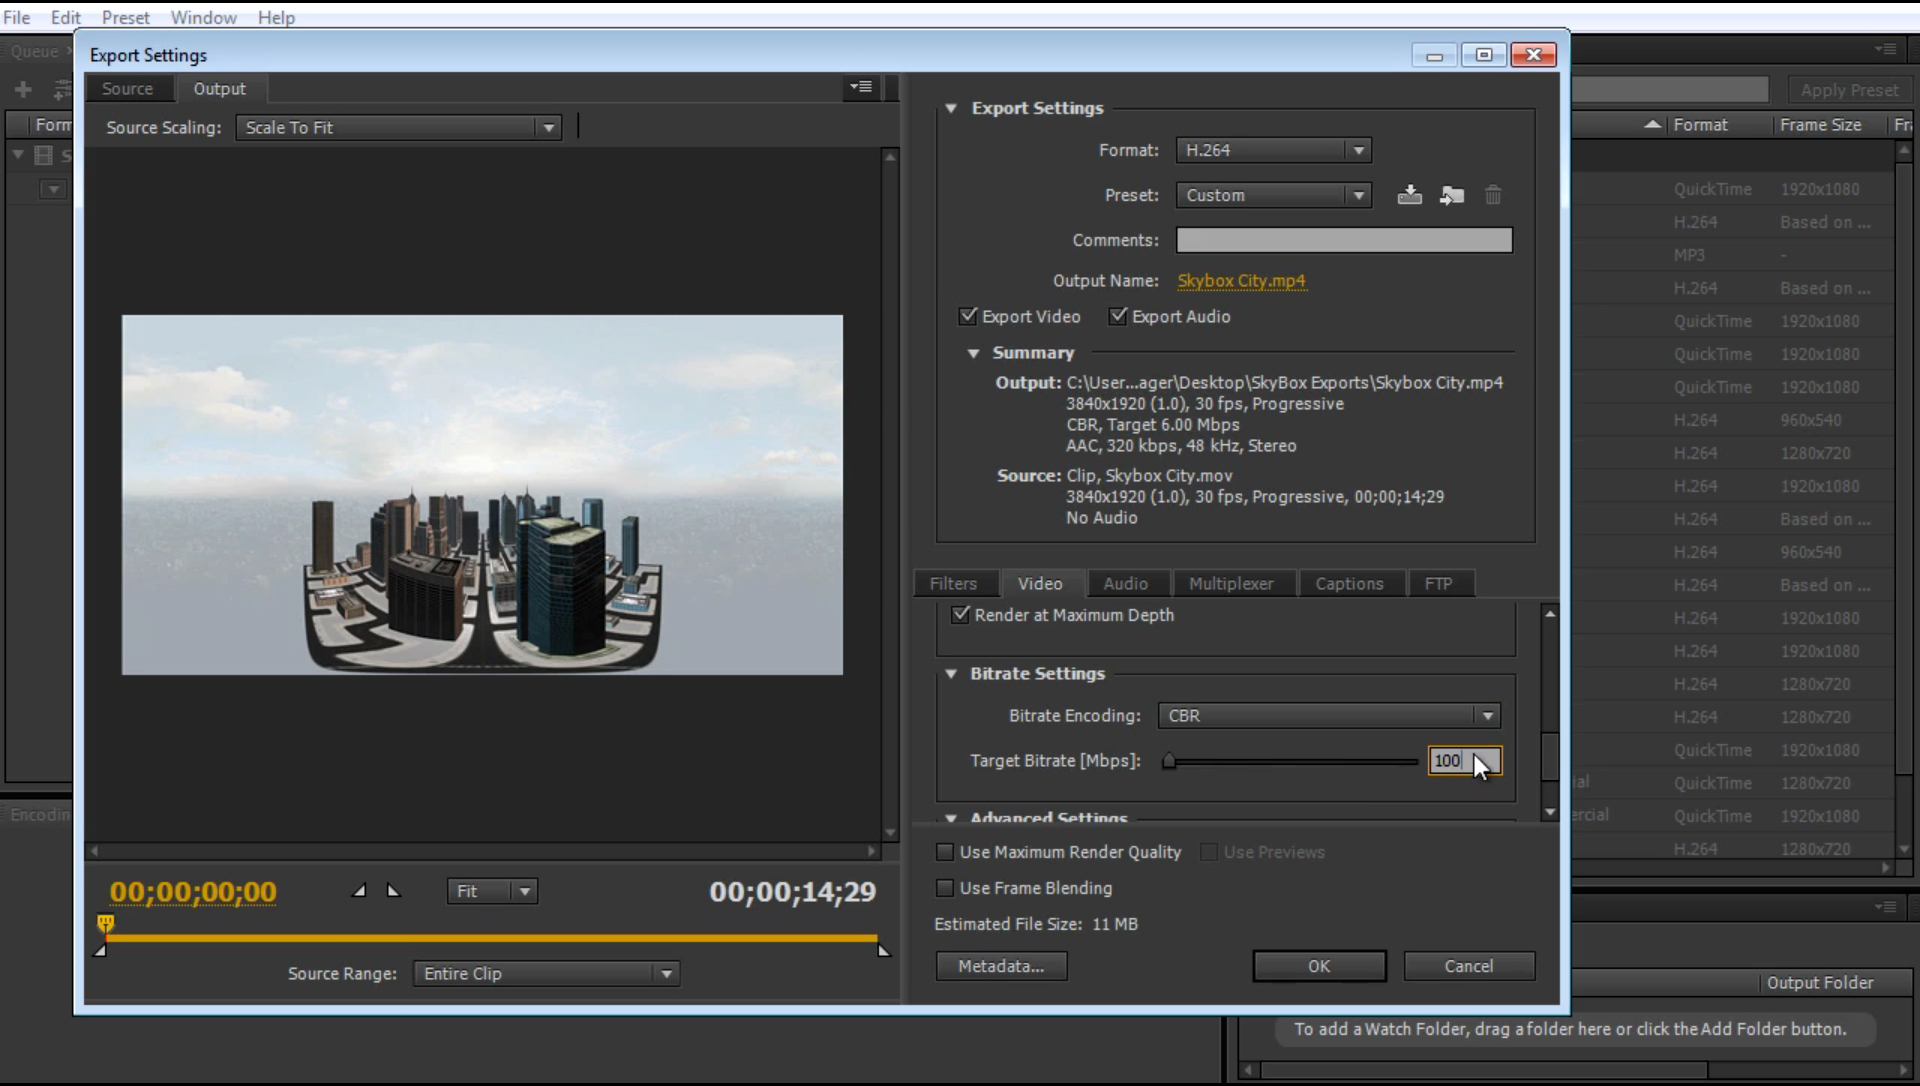 How to Use Adobe Media Encoder + Youtube Metadata Tools for